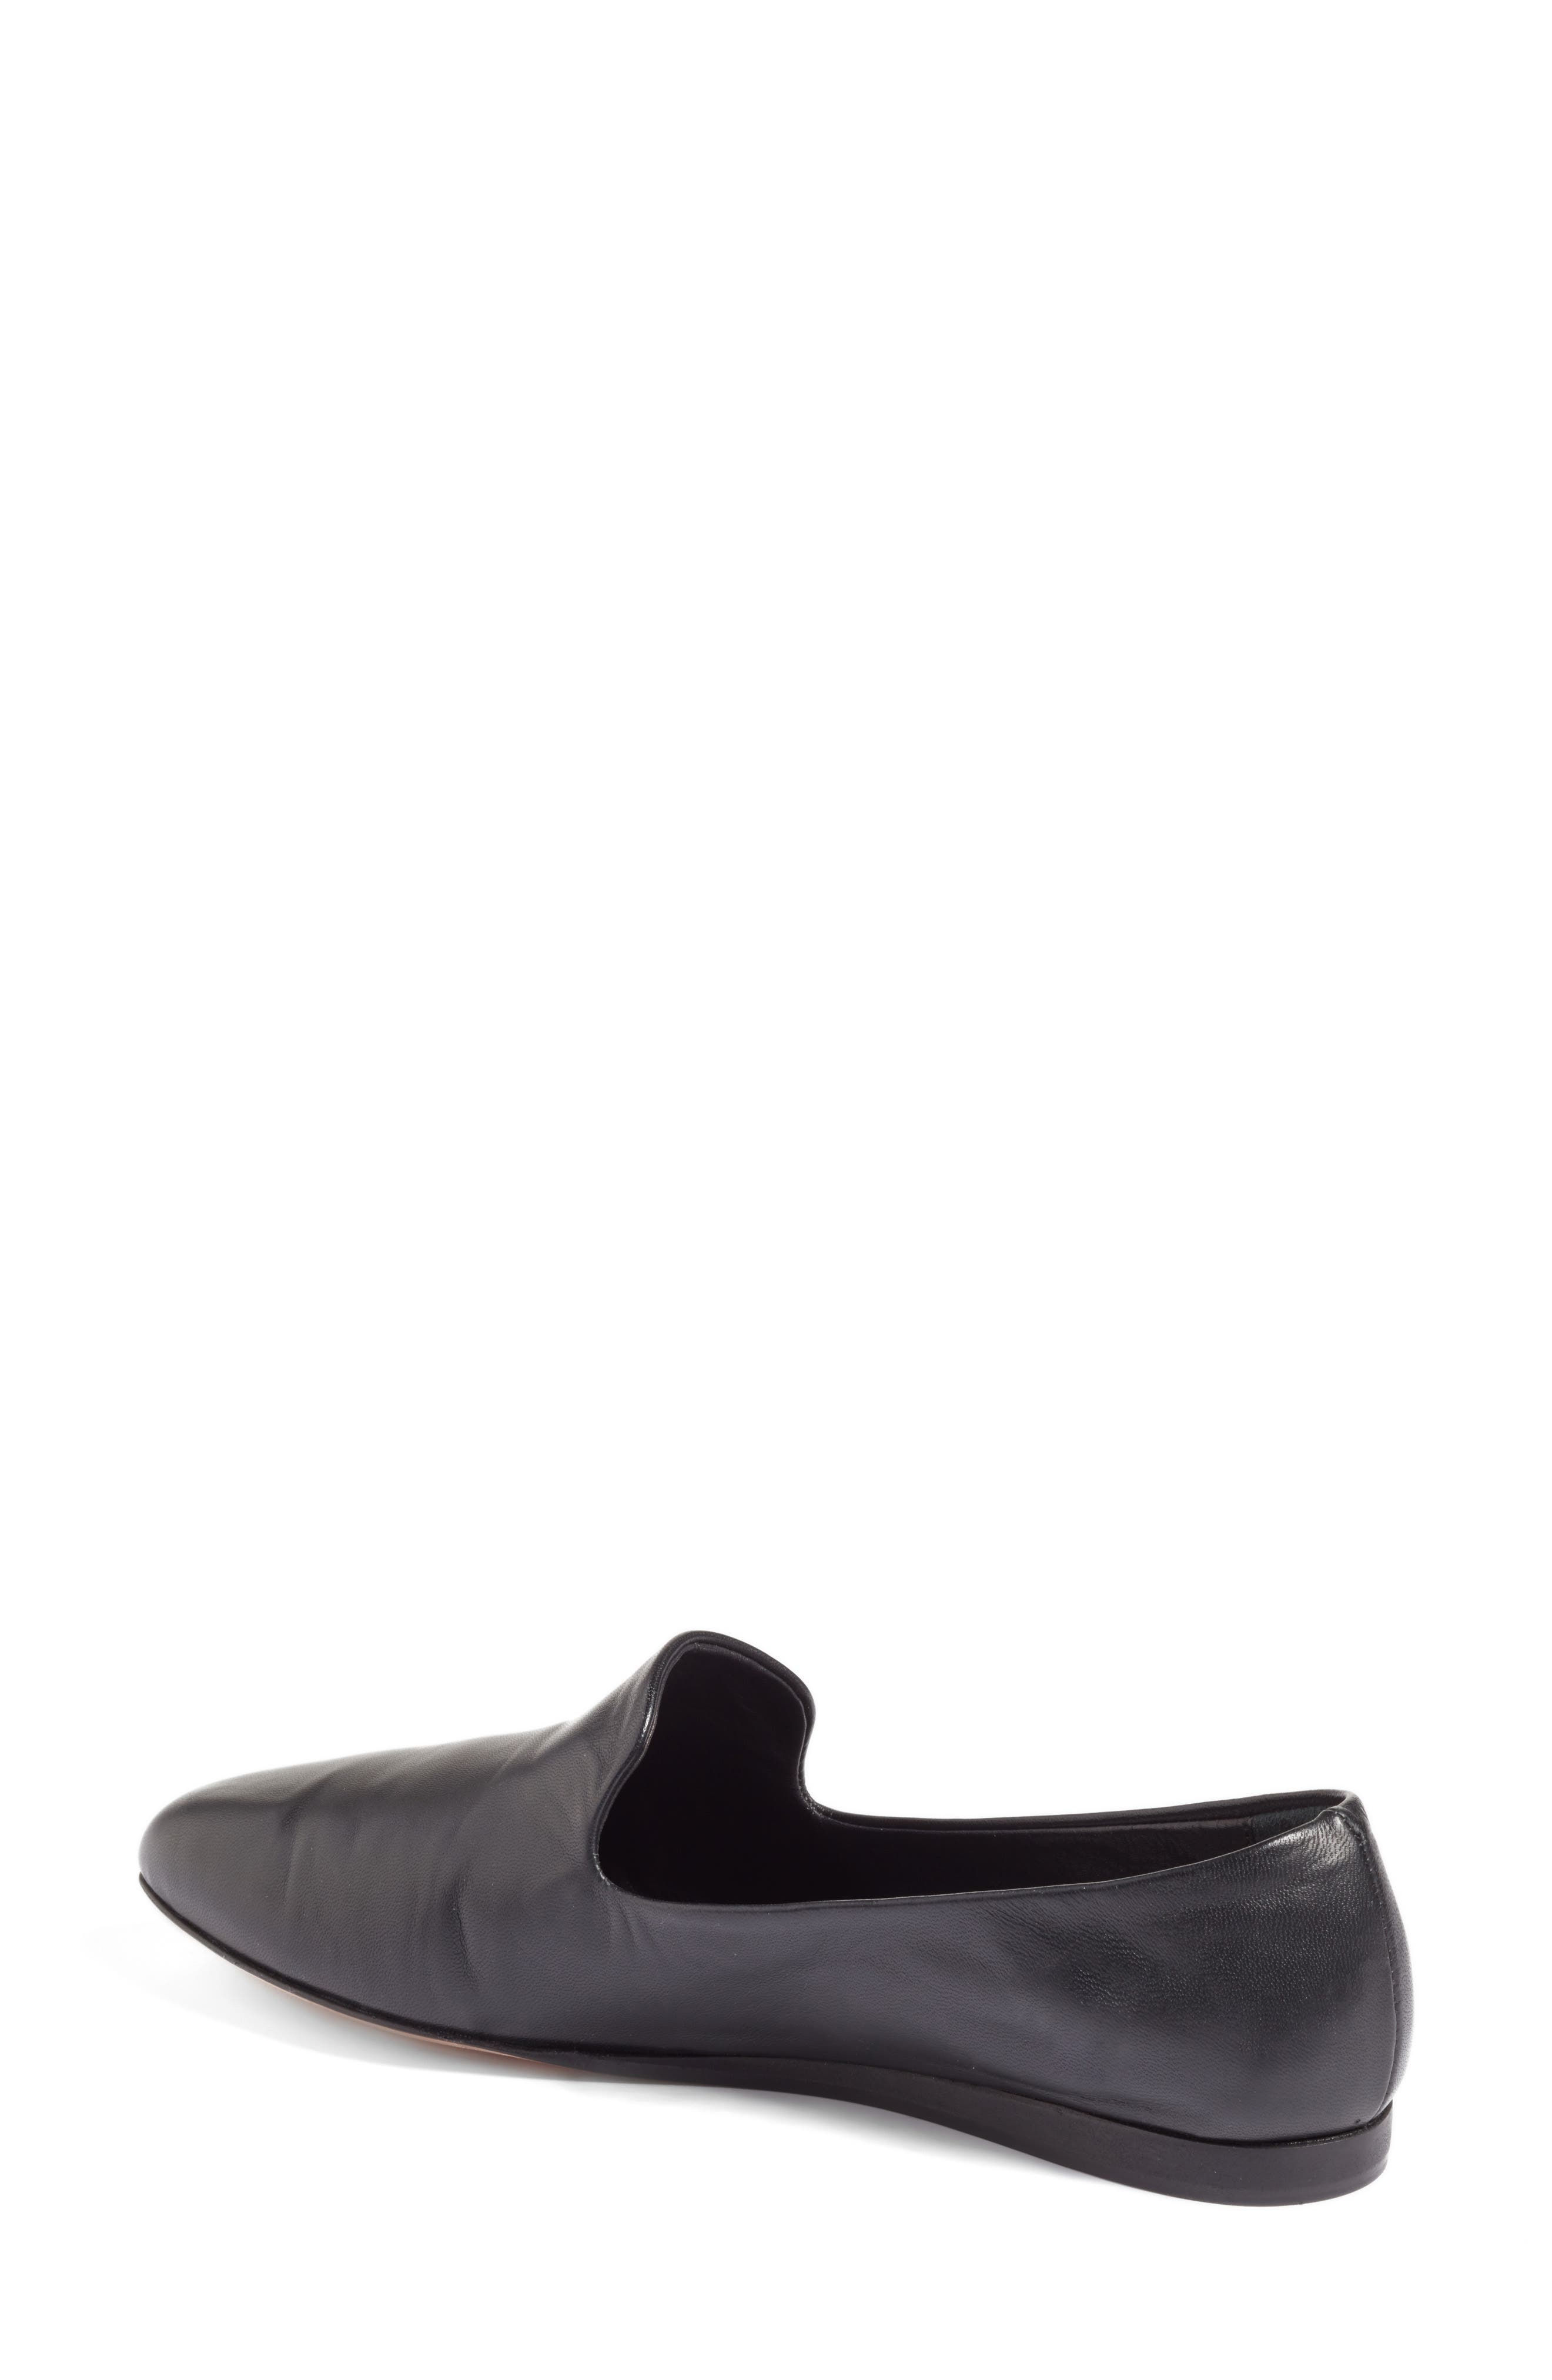 Griffin Pointy Toe Loafer,                             Alternate thumbnail 2, color,                             001